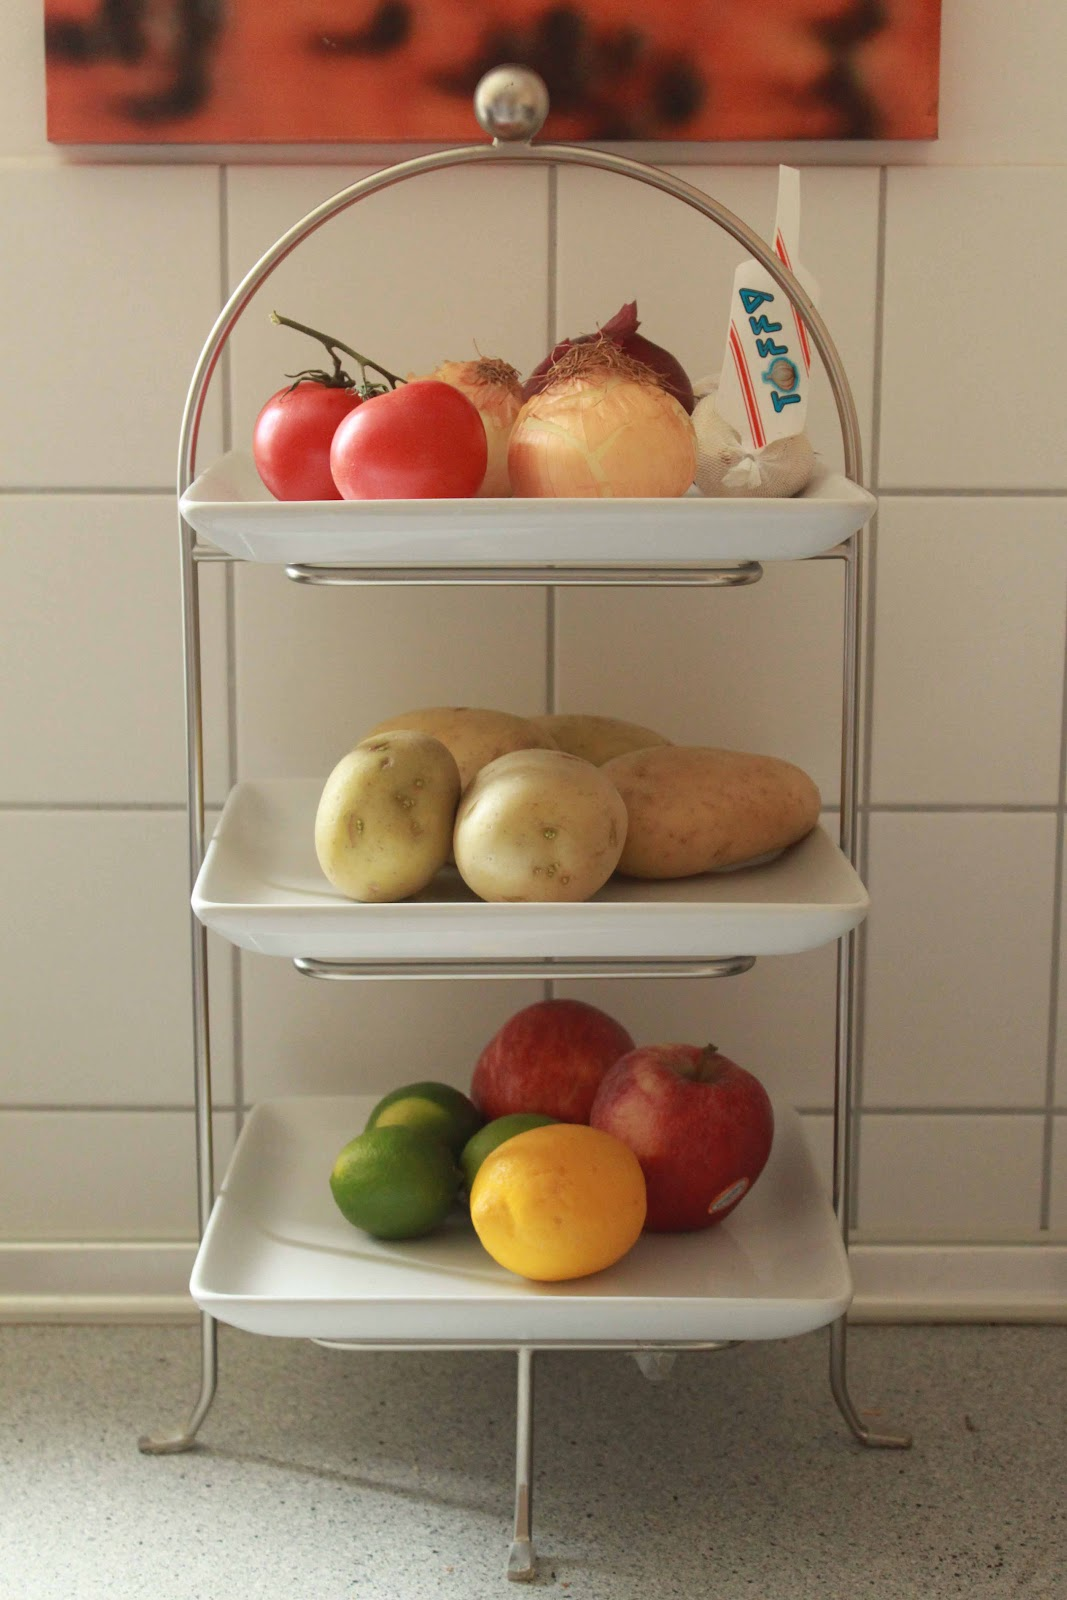 Below The Milk And Produce Goes Into The Produce Drawers